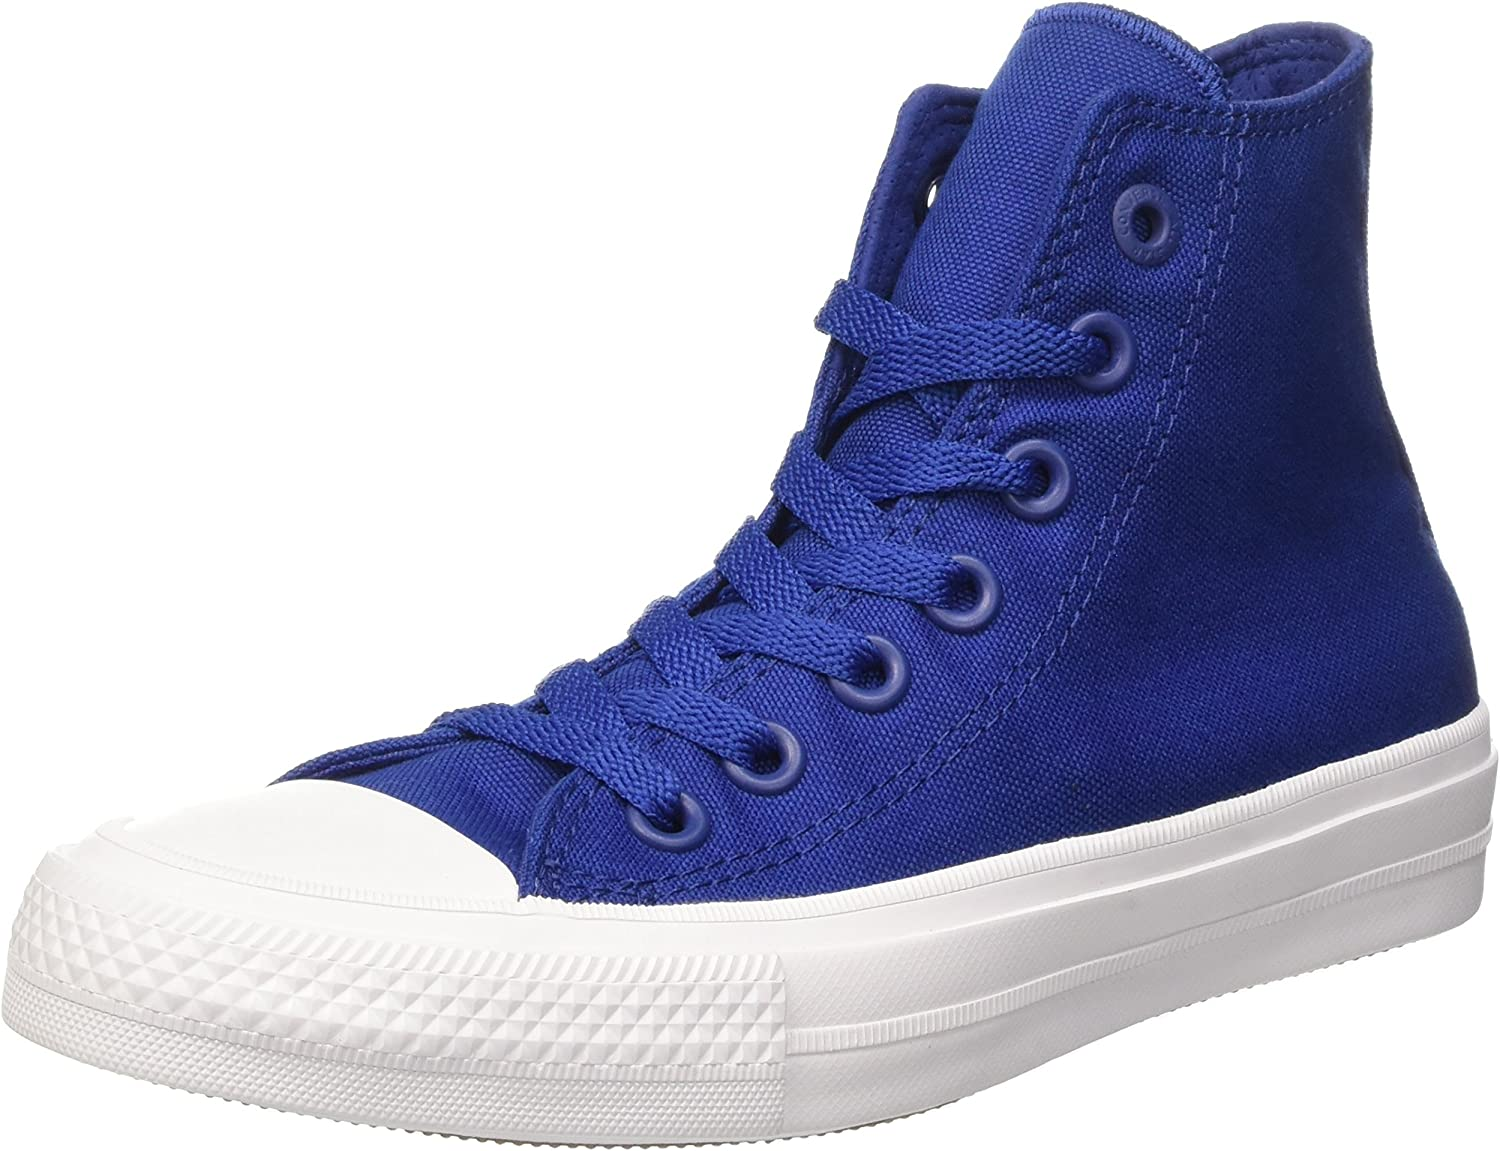 Converse Unisex Chuck Taylor All Star II Hi Basketball Shoe (11, Sodalite Blue)